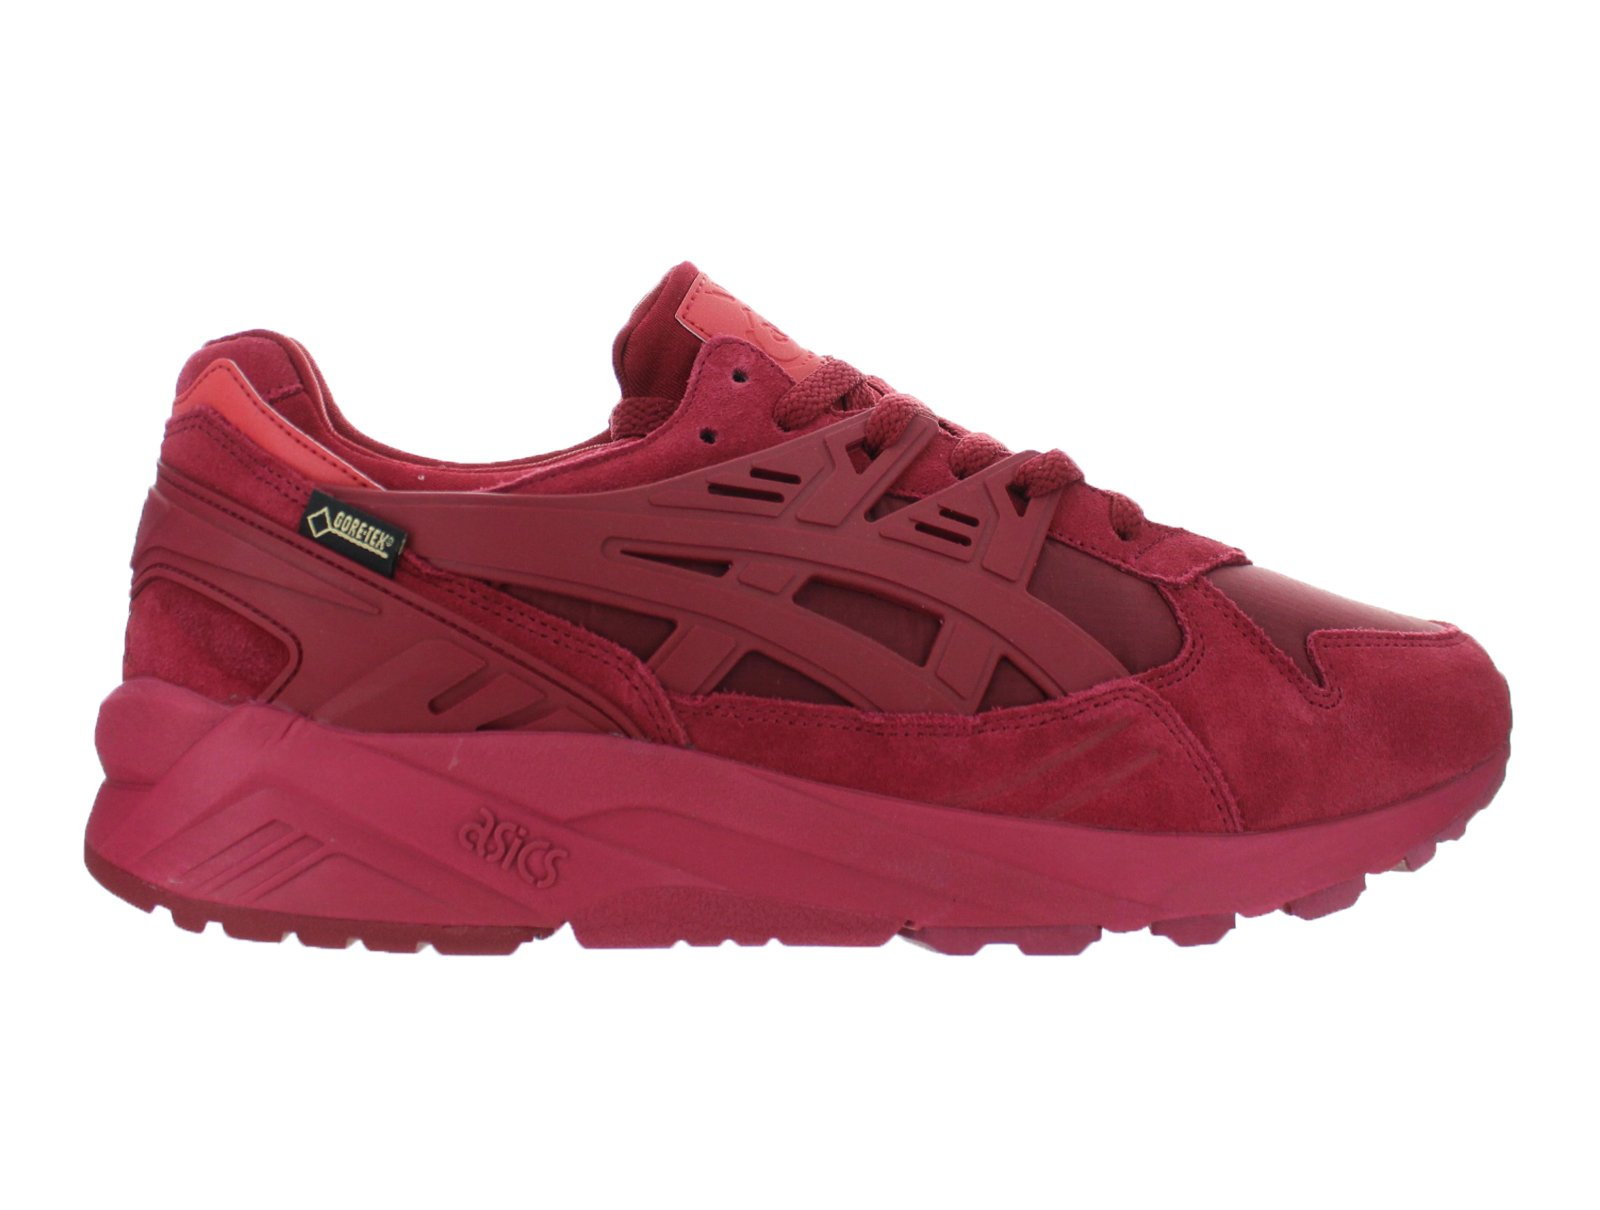 Asics Gel-Kayano Trainer Mens Burgundy Suede Athletic Lace Up Training Shoes by